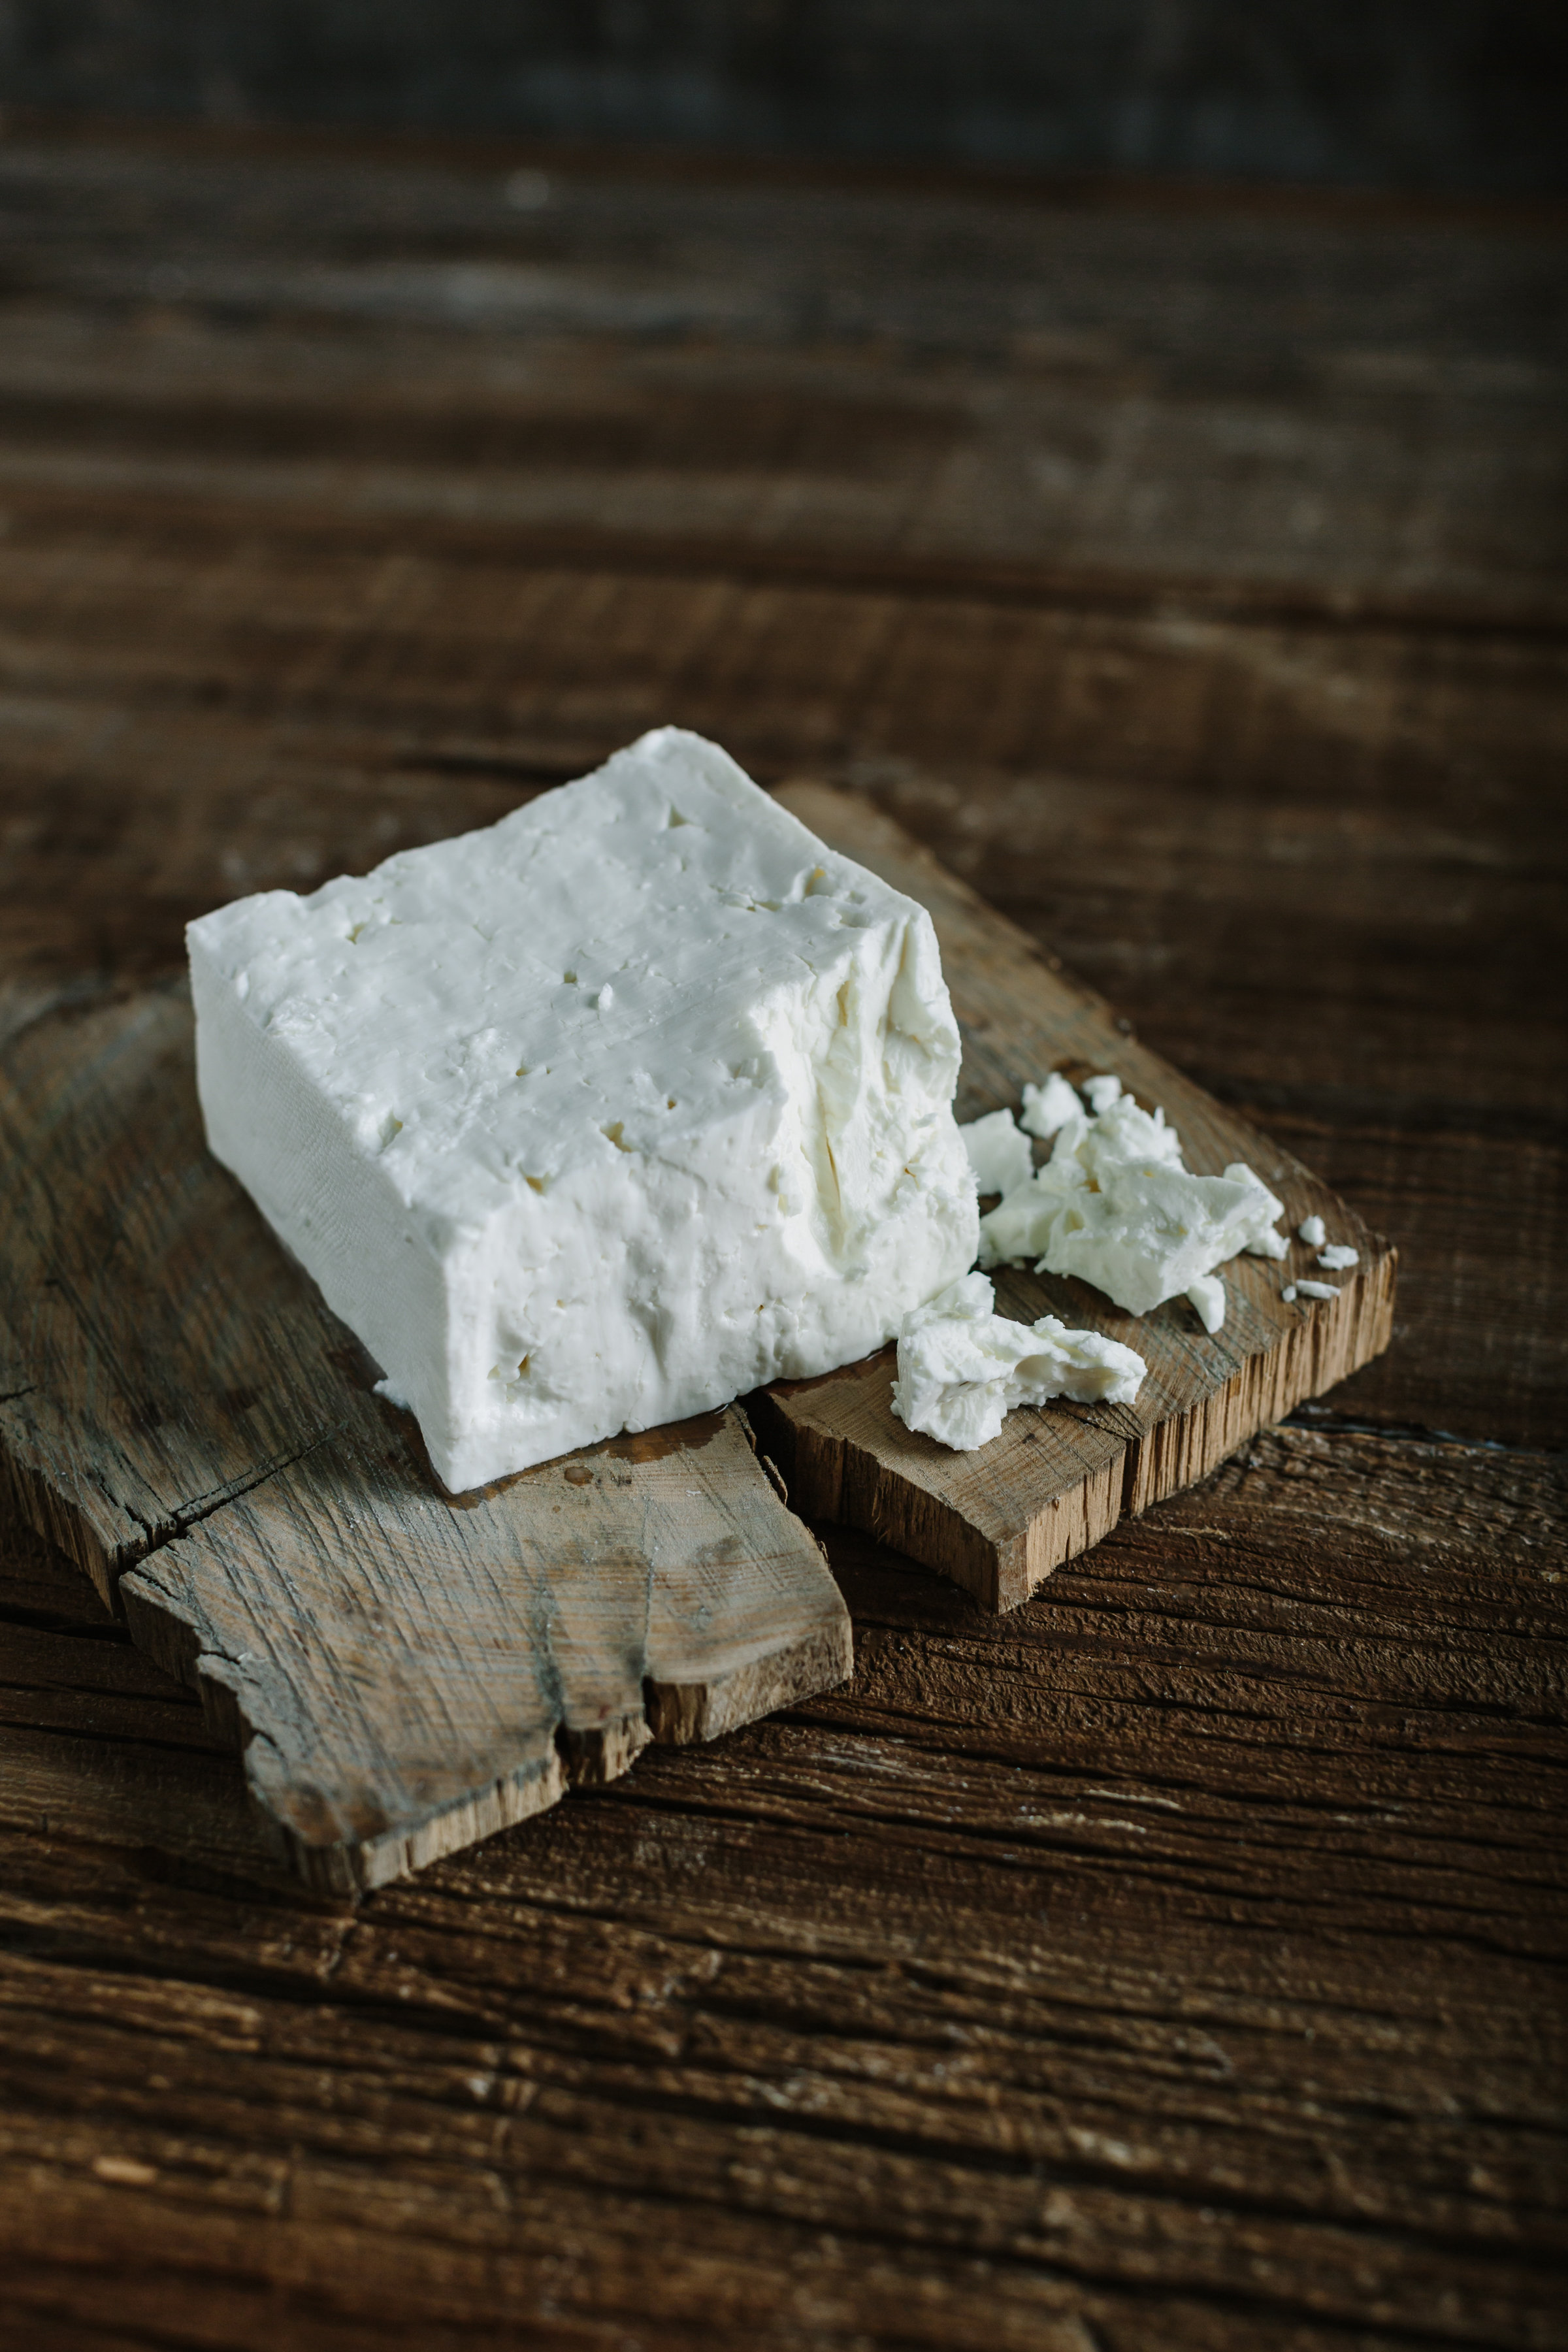 Softer Texture - Feta's texture can be hard, soft and everywhere in between. How it's made and how long it's aged changes its texture and how it's used in the kitchen. In the U.S. we're used to harder, crumblier feta. Essex feta will be much softer by comparison. This is gentle, pillowy feta, more like what the Greeks eat every day.